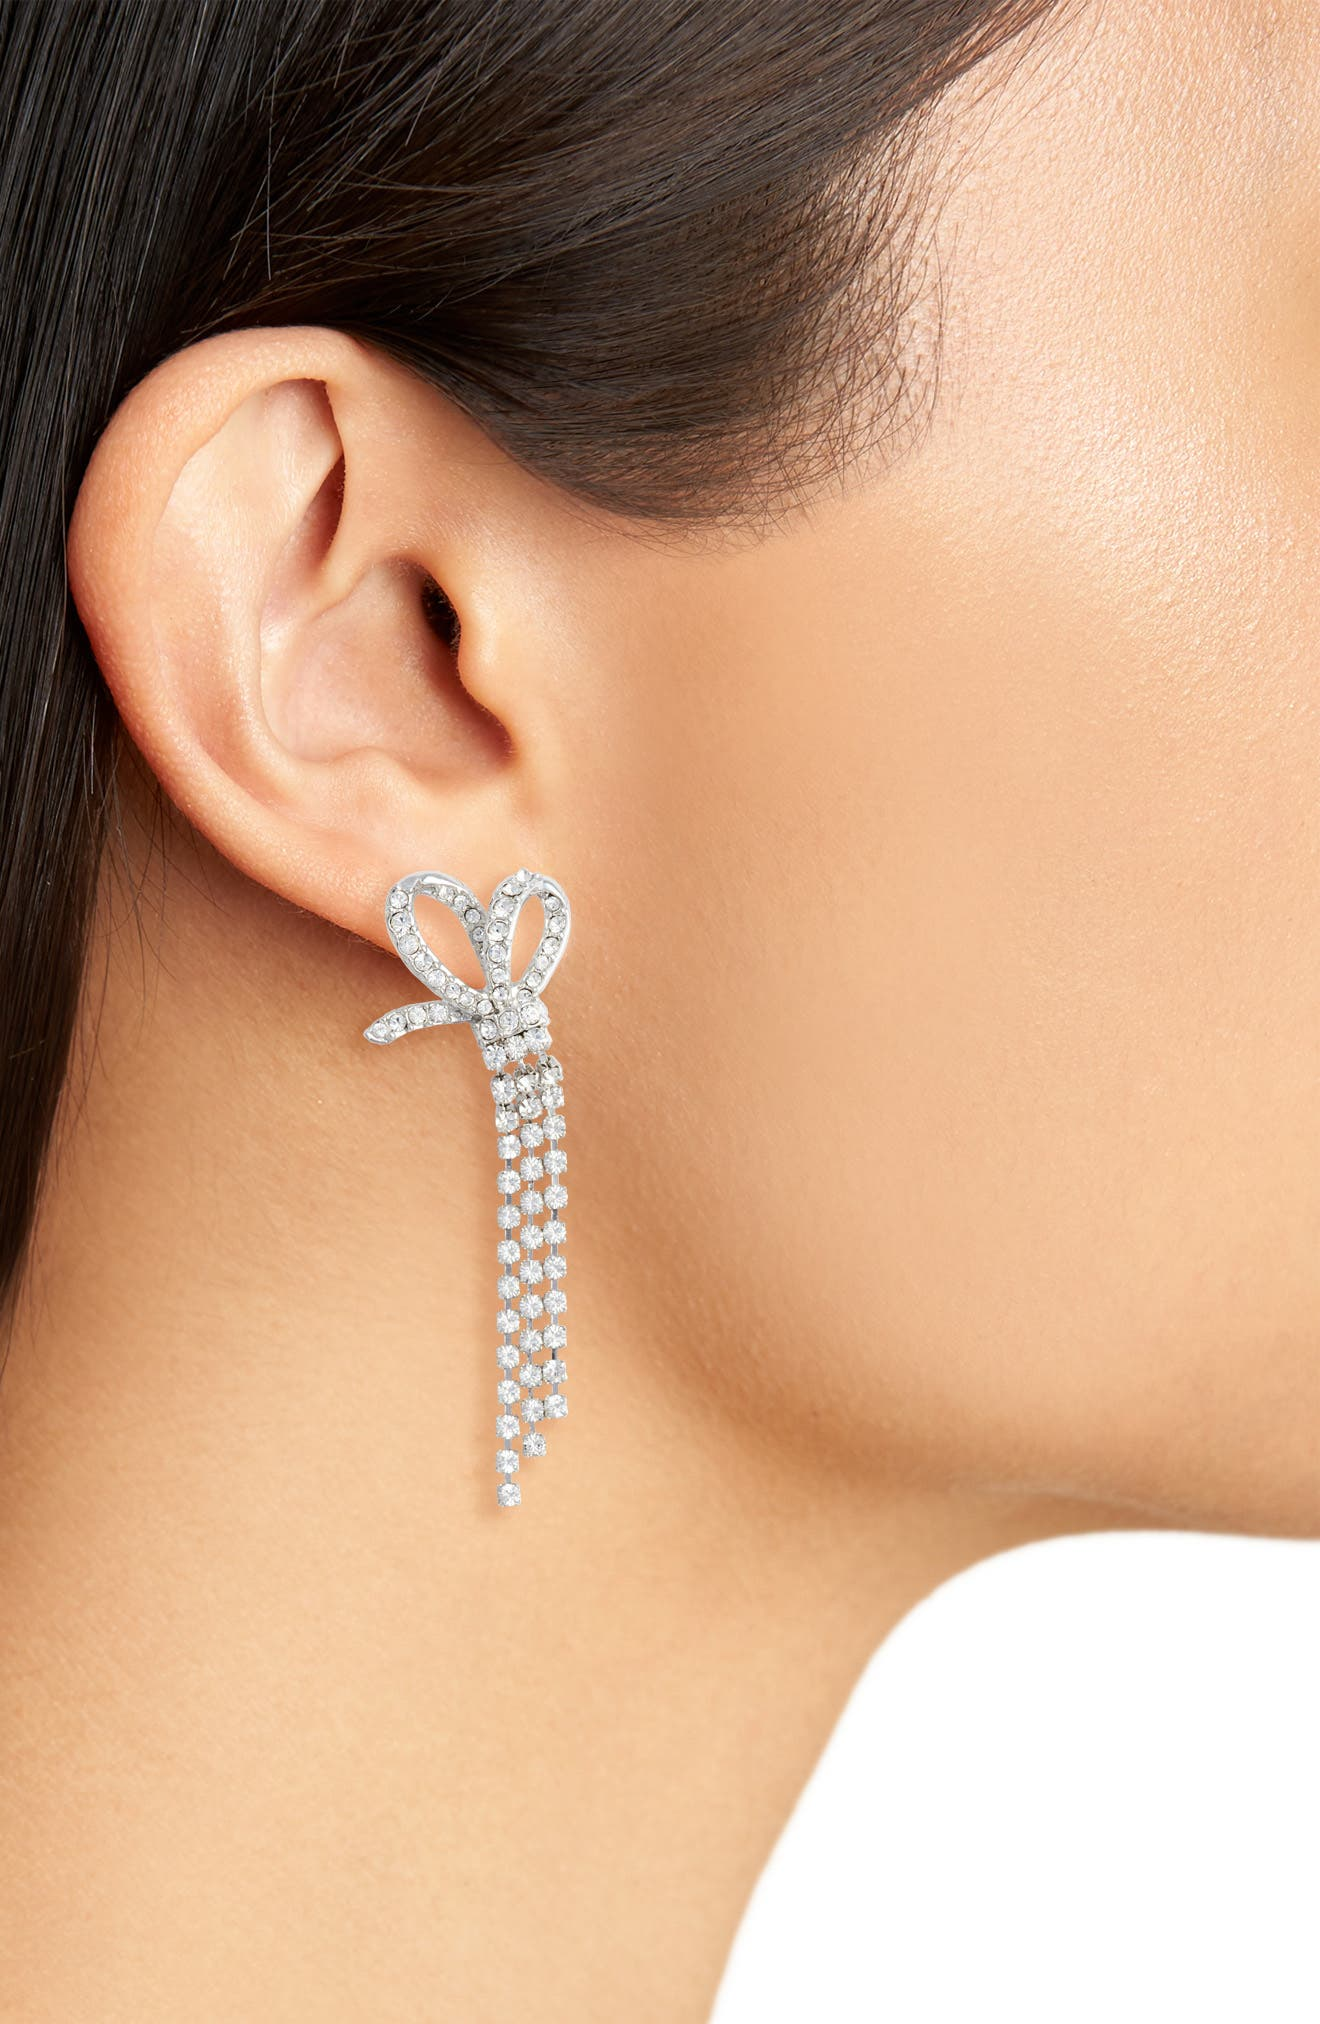 Drop Earrings,                             Alternate thumbnail 2, color,                             Crystal/ Silver